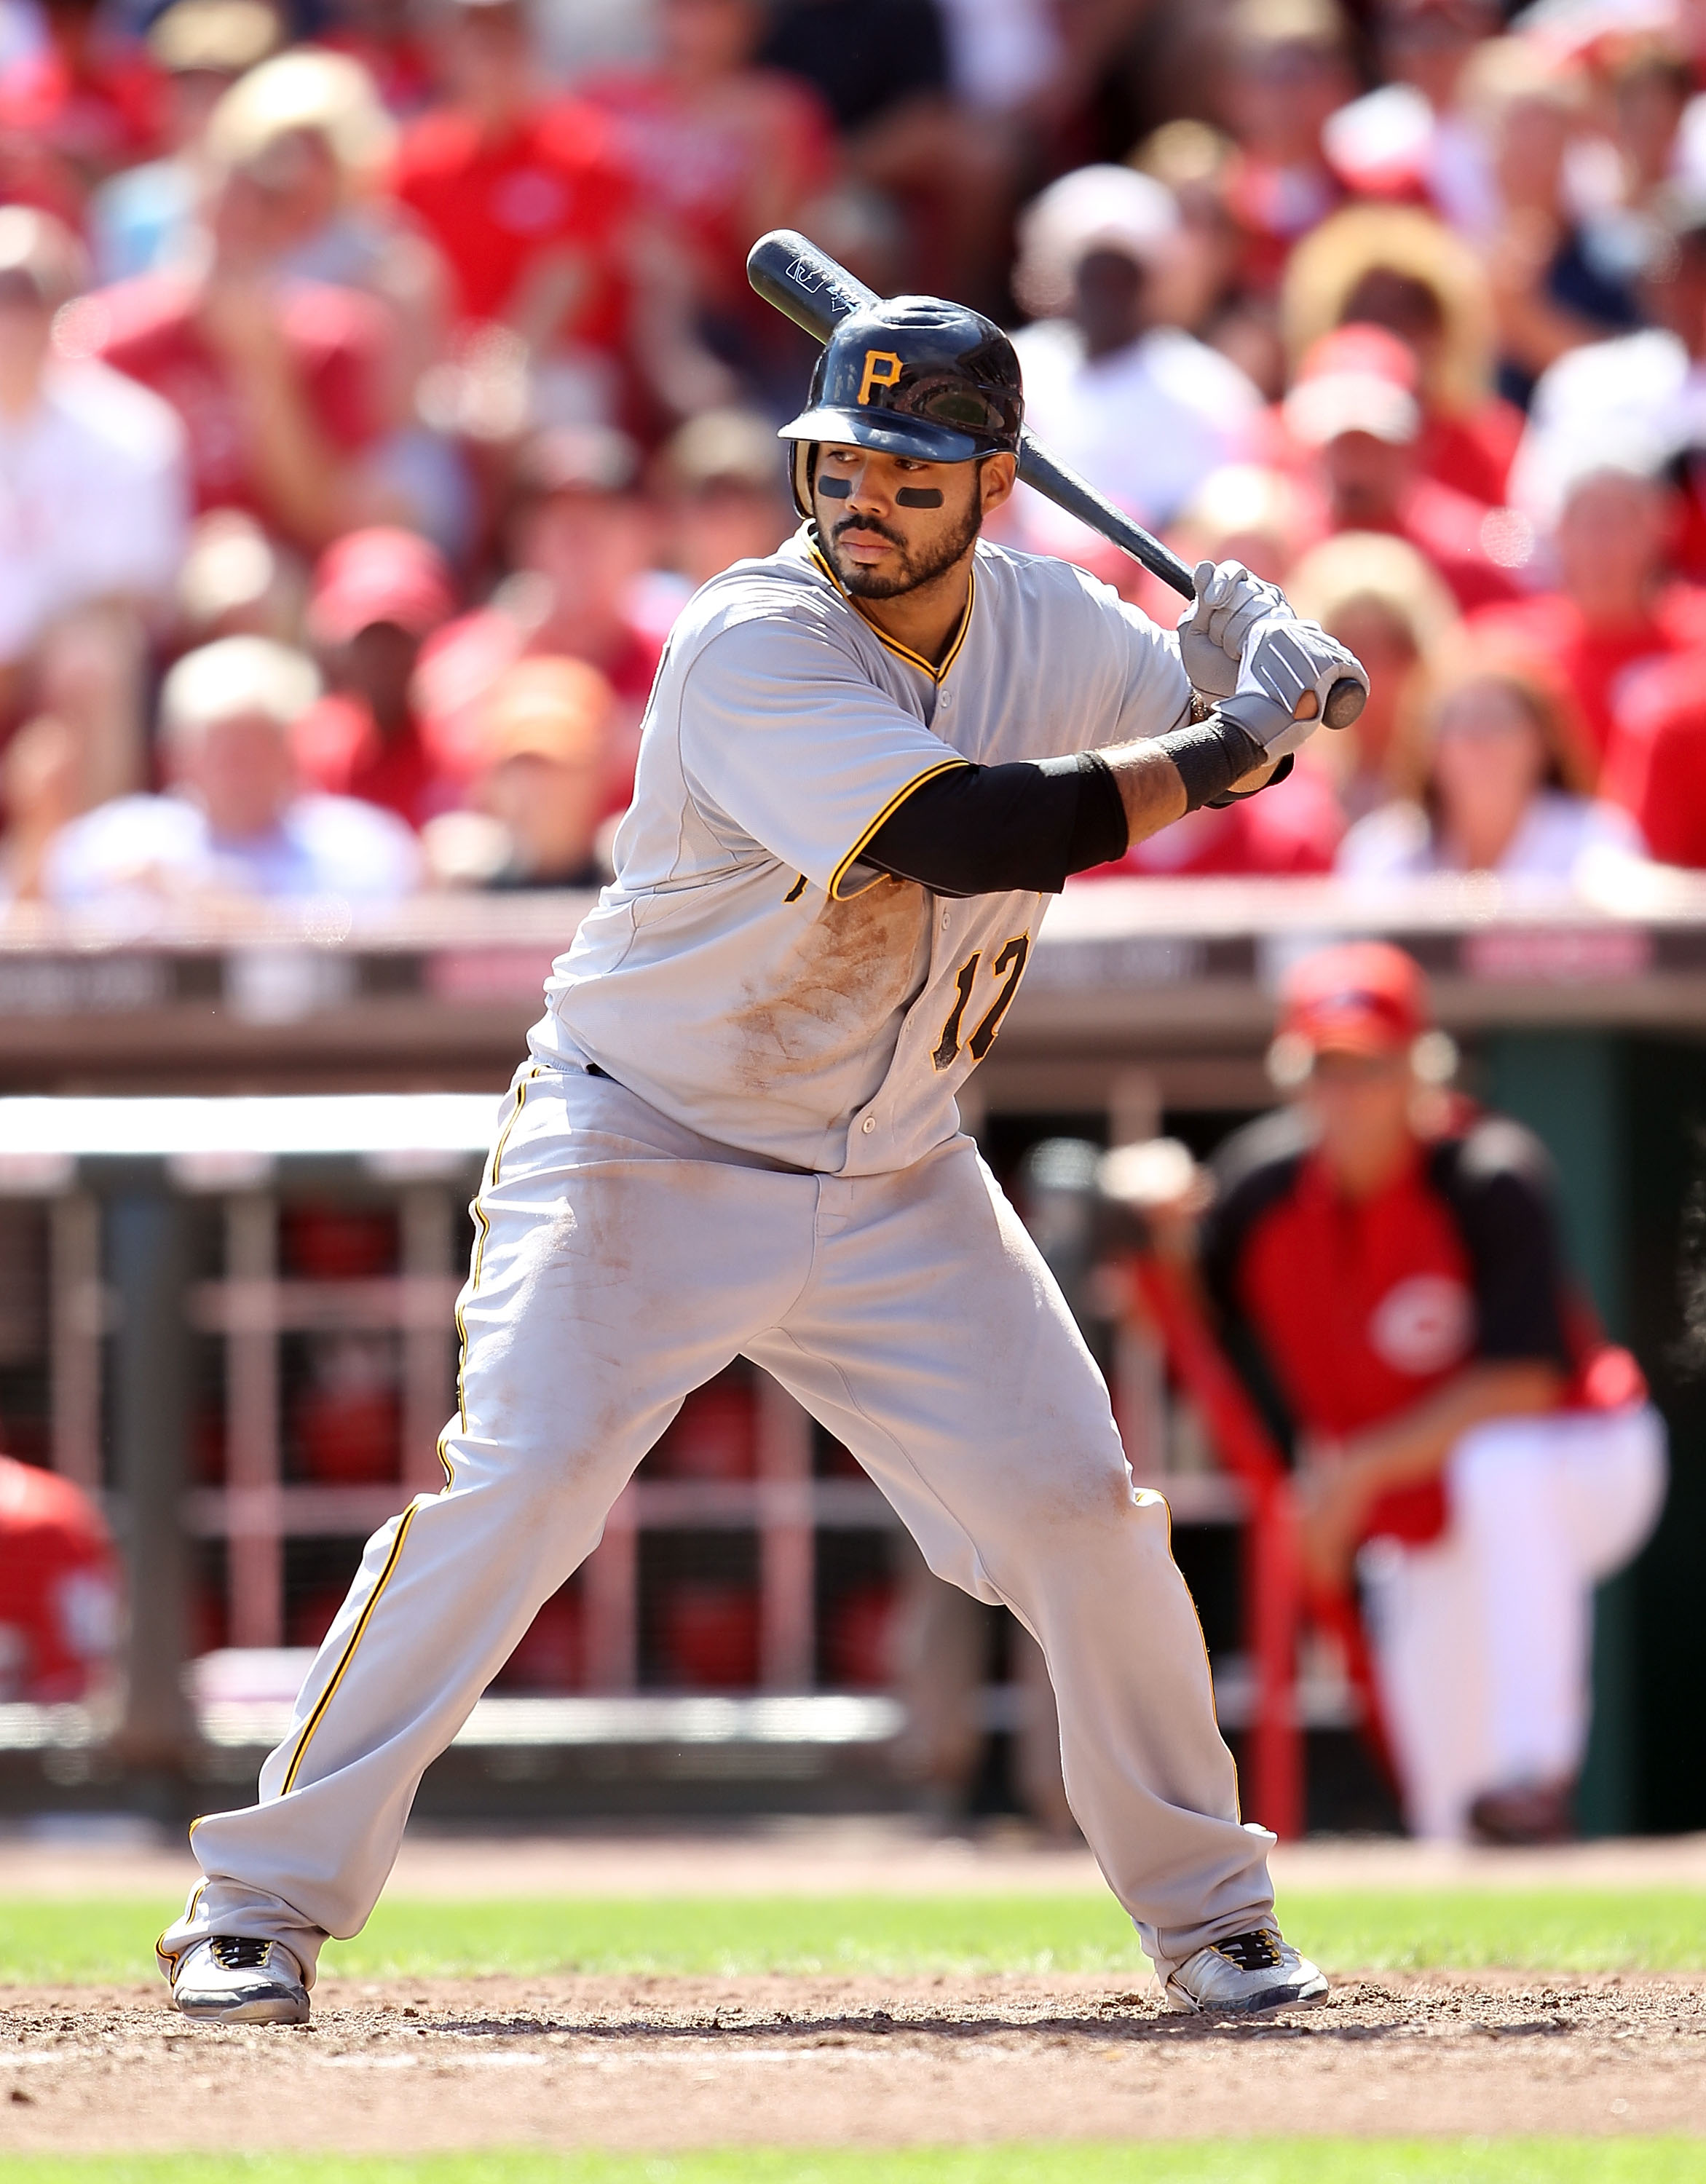 CINCINNATI - SEPTEMBER 12:  Pedro Alvarez #17 of the Pittsburgh Pirates is pictured during the game against the Cincinnati Reds at Great American Ballpark on September 12, 2010 in Cincinnati, Ohio.  (Photo by Andy Lyons/Getty Images)